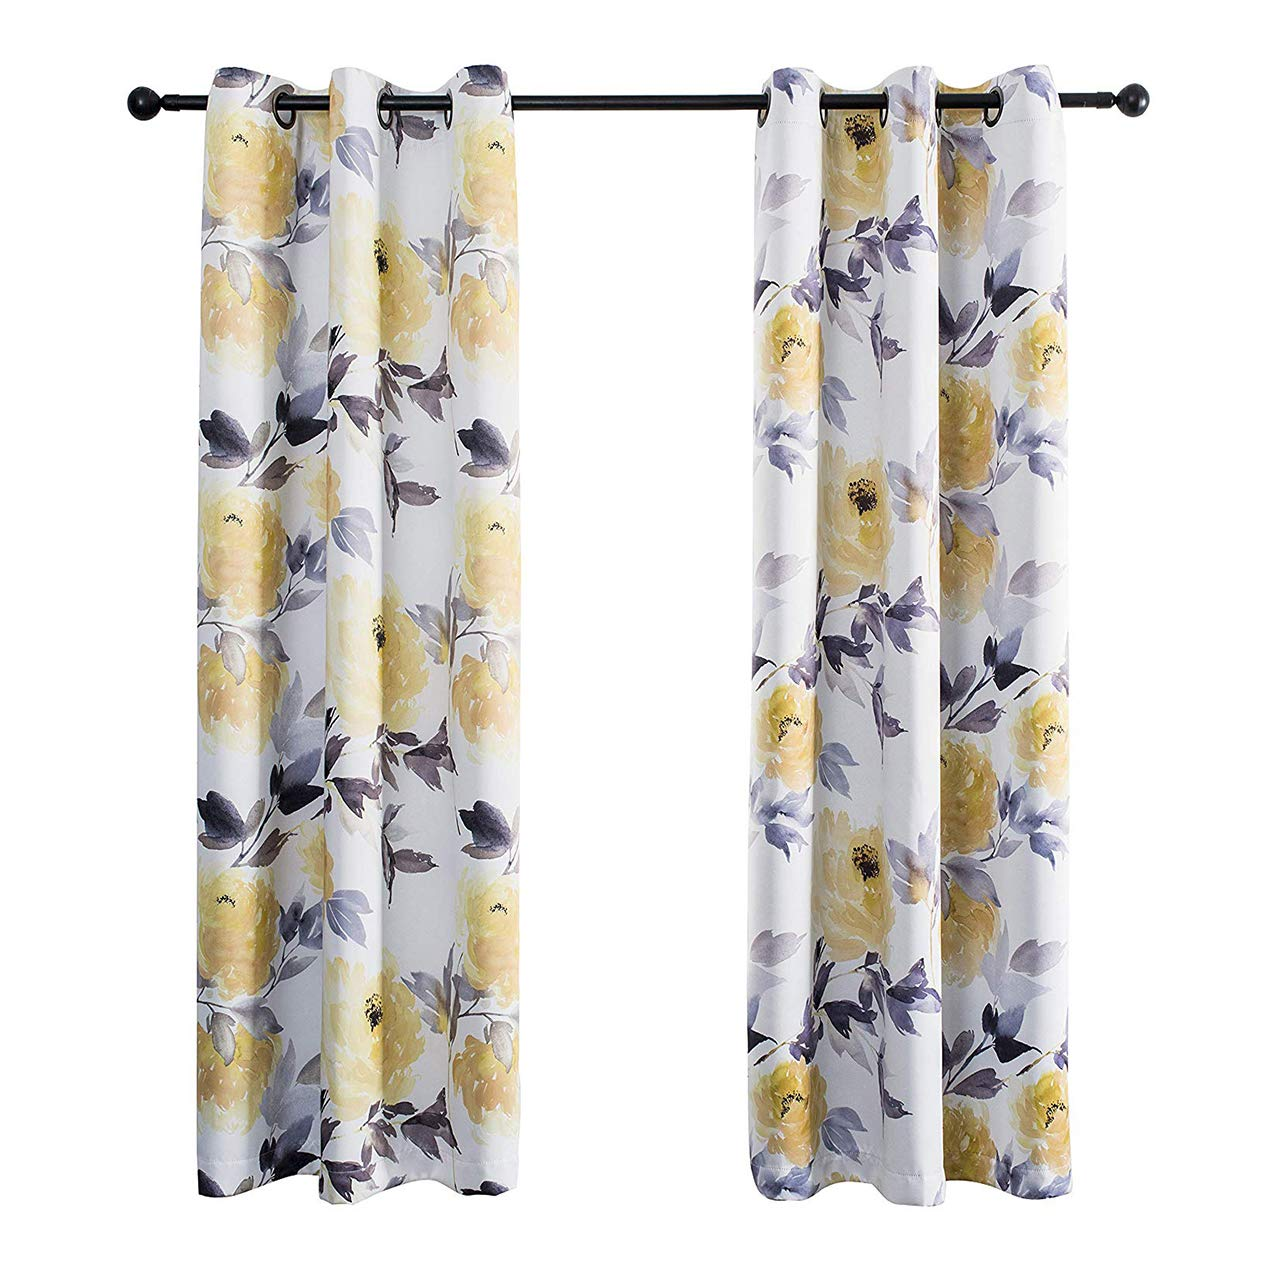 MYSKY HOME Printed Floral Curtains for Living Room, Room Darkening Grommet Curtain Panels 42 inch Wide by 63 inch Length (Yellow, 1 Pair)